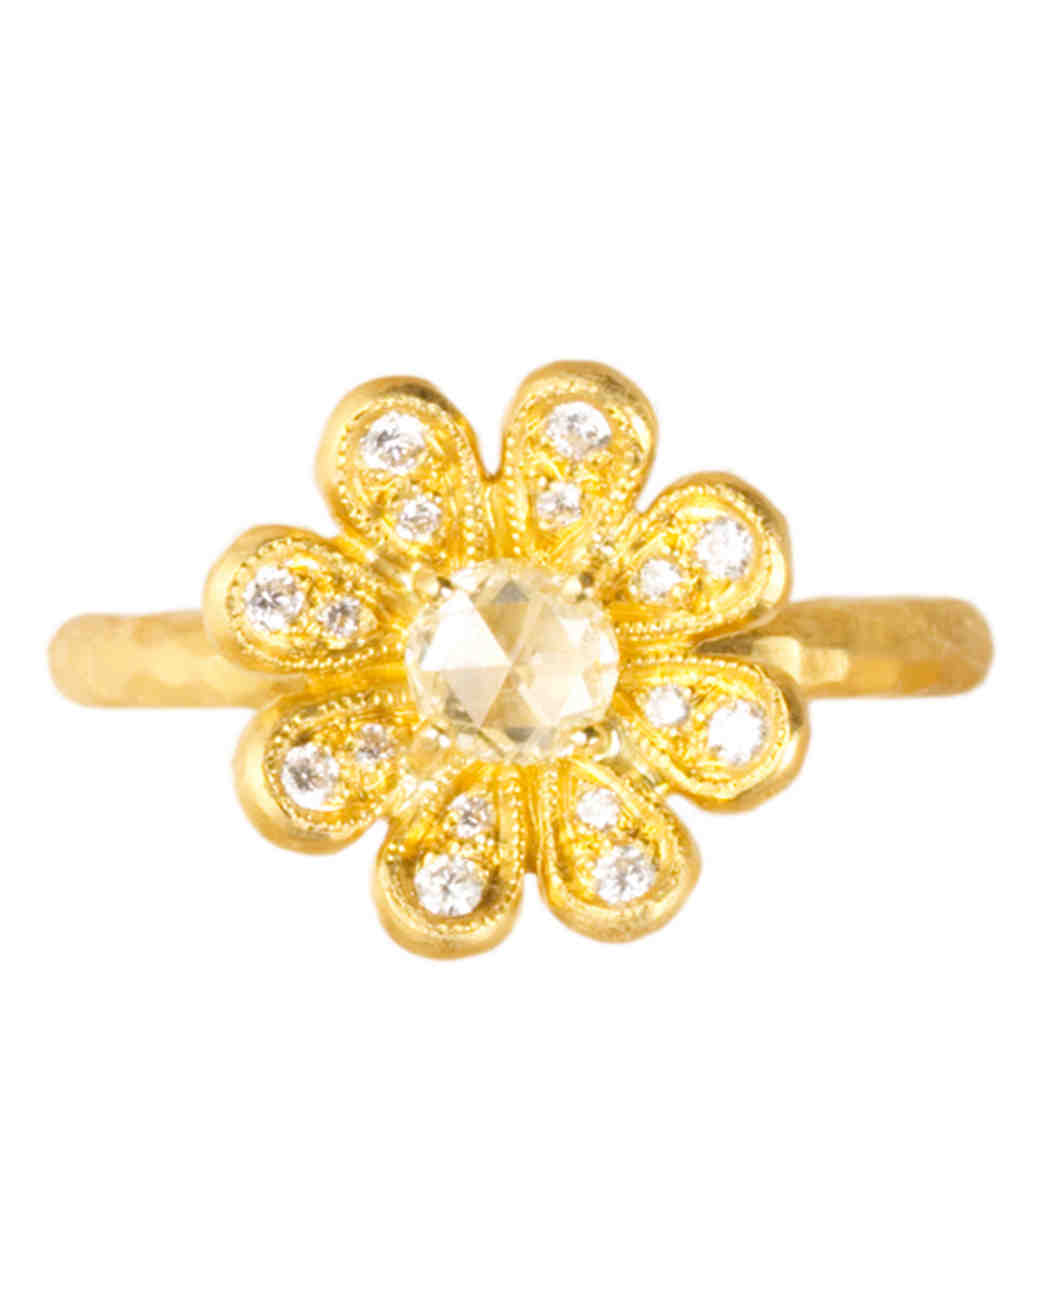 msw_sum10_yellow_ring3_cathywaterman.jpg